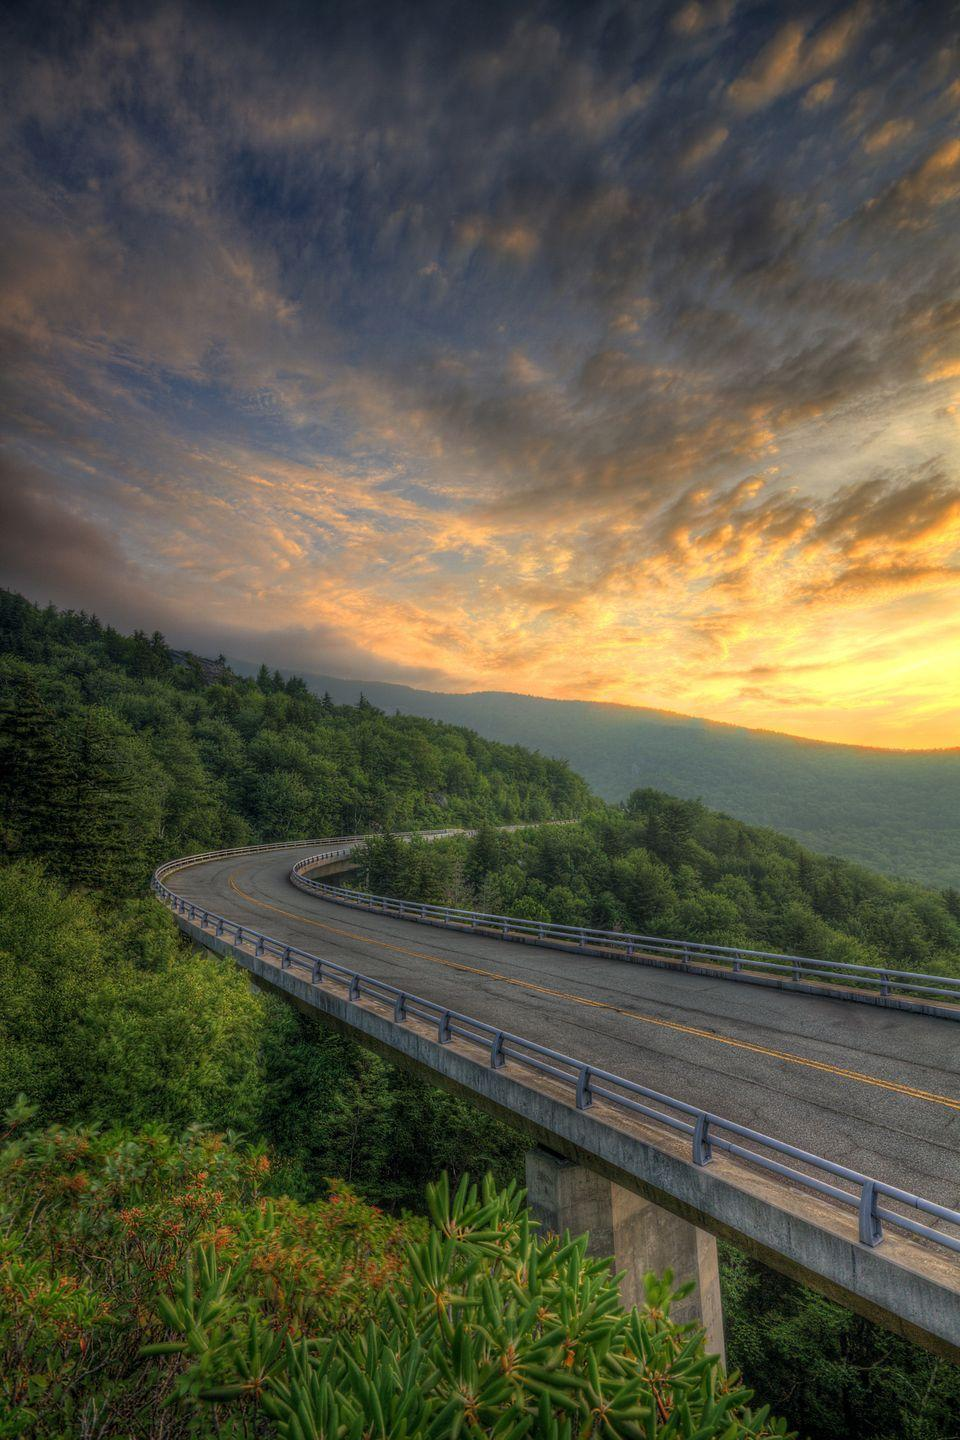 """<p><strong>Where: </strong>Blue Ridge Parkway, North Carolina and Virginia</p><p><strong>Why We Love It: </strong><a href=""""https://www.countryliving.com/life/travel/g4454/most-scenic-drives-in-america/"""" rel=""""nofollow noopener"""" target=""""_blank"""" data-ylk=""""slk:This stretch of road"""" class=""""link rapid-noclick-resp"""">This stretch of road</a> that meanders 469 miles through the Appalachian Mountains is the most visited place in the U.S. National Park Service.</p>"""